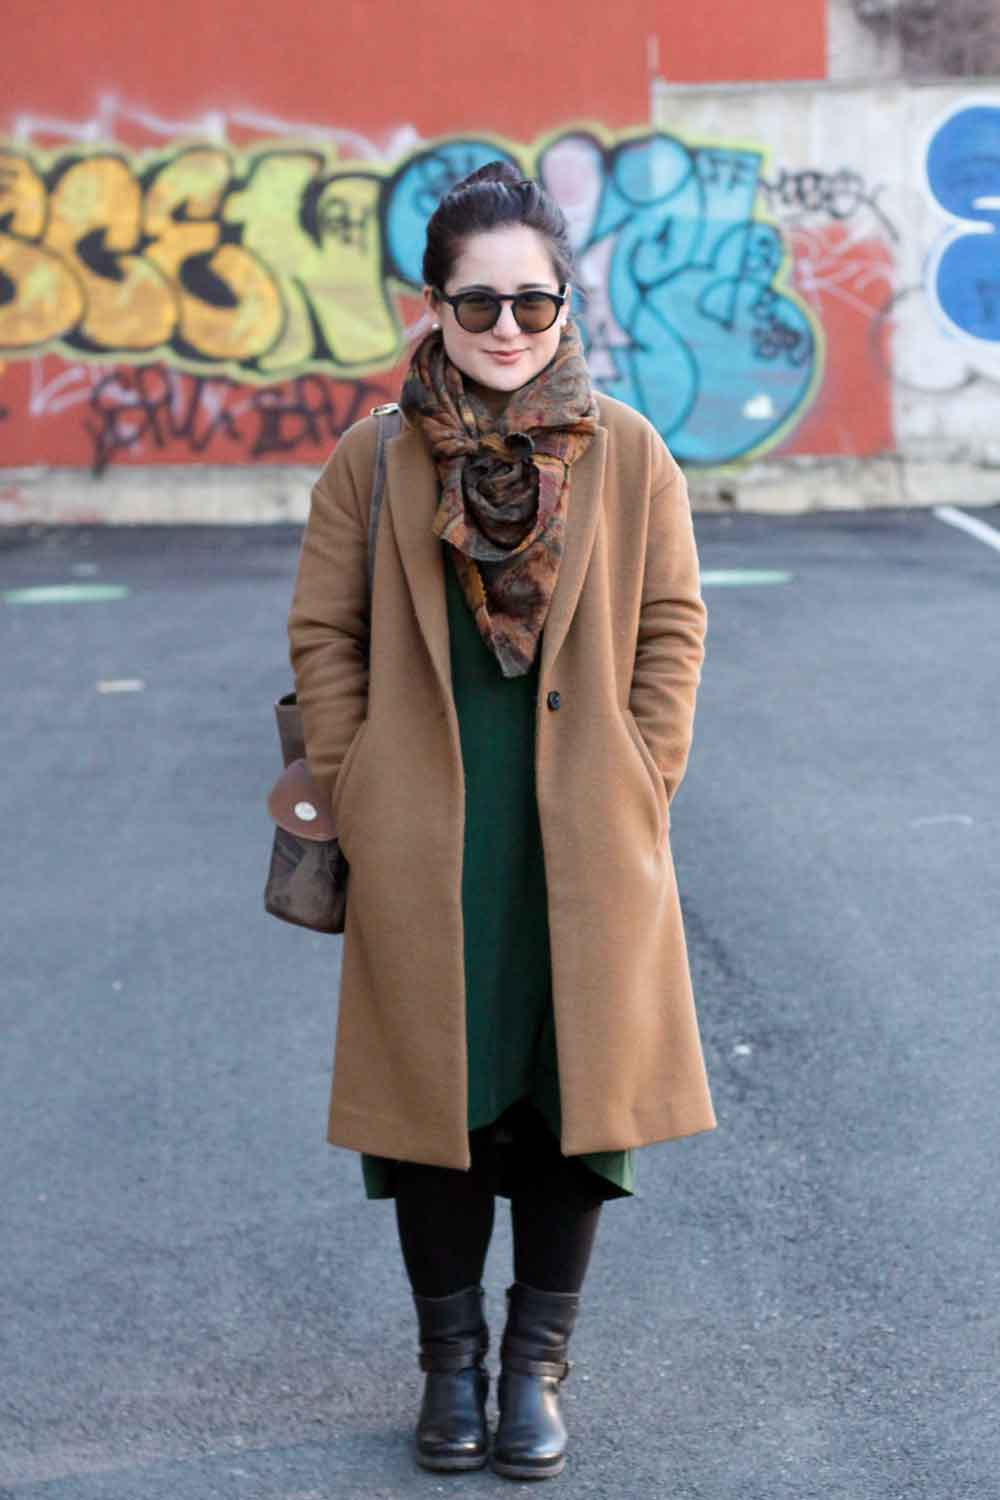 Dress + Coat: Madewell // Scarf + Bag: Vintage // Boots:  Pikolinos // Sunglasses: SEE Eyewear